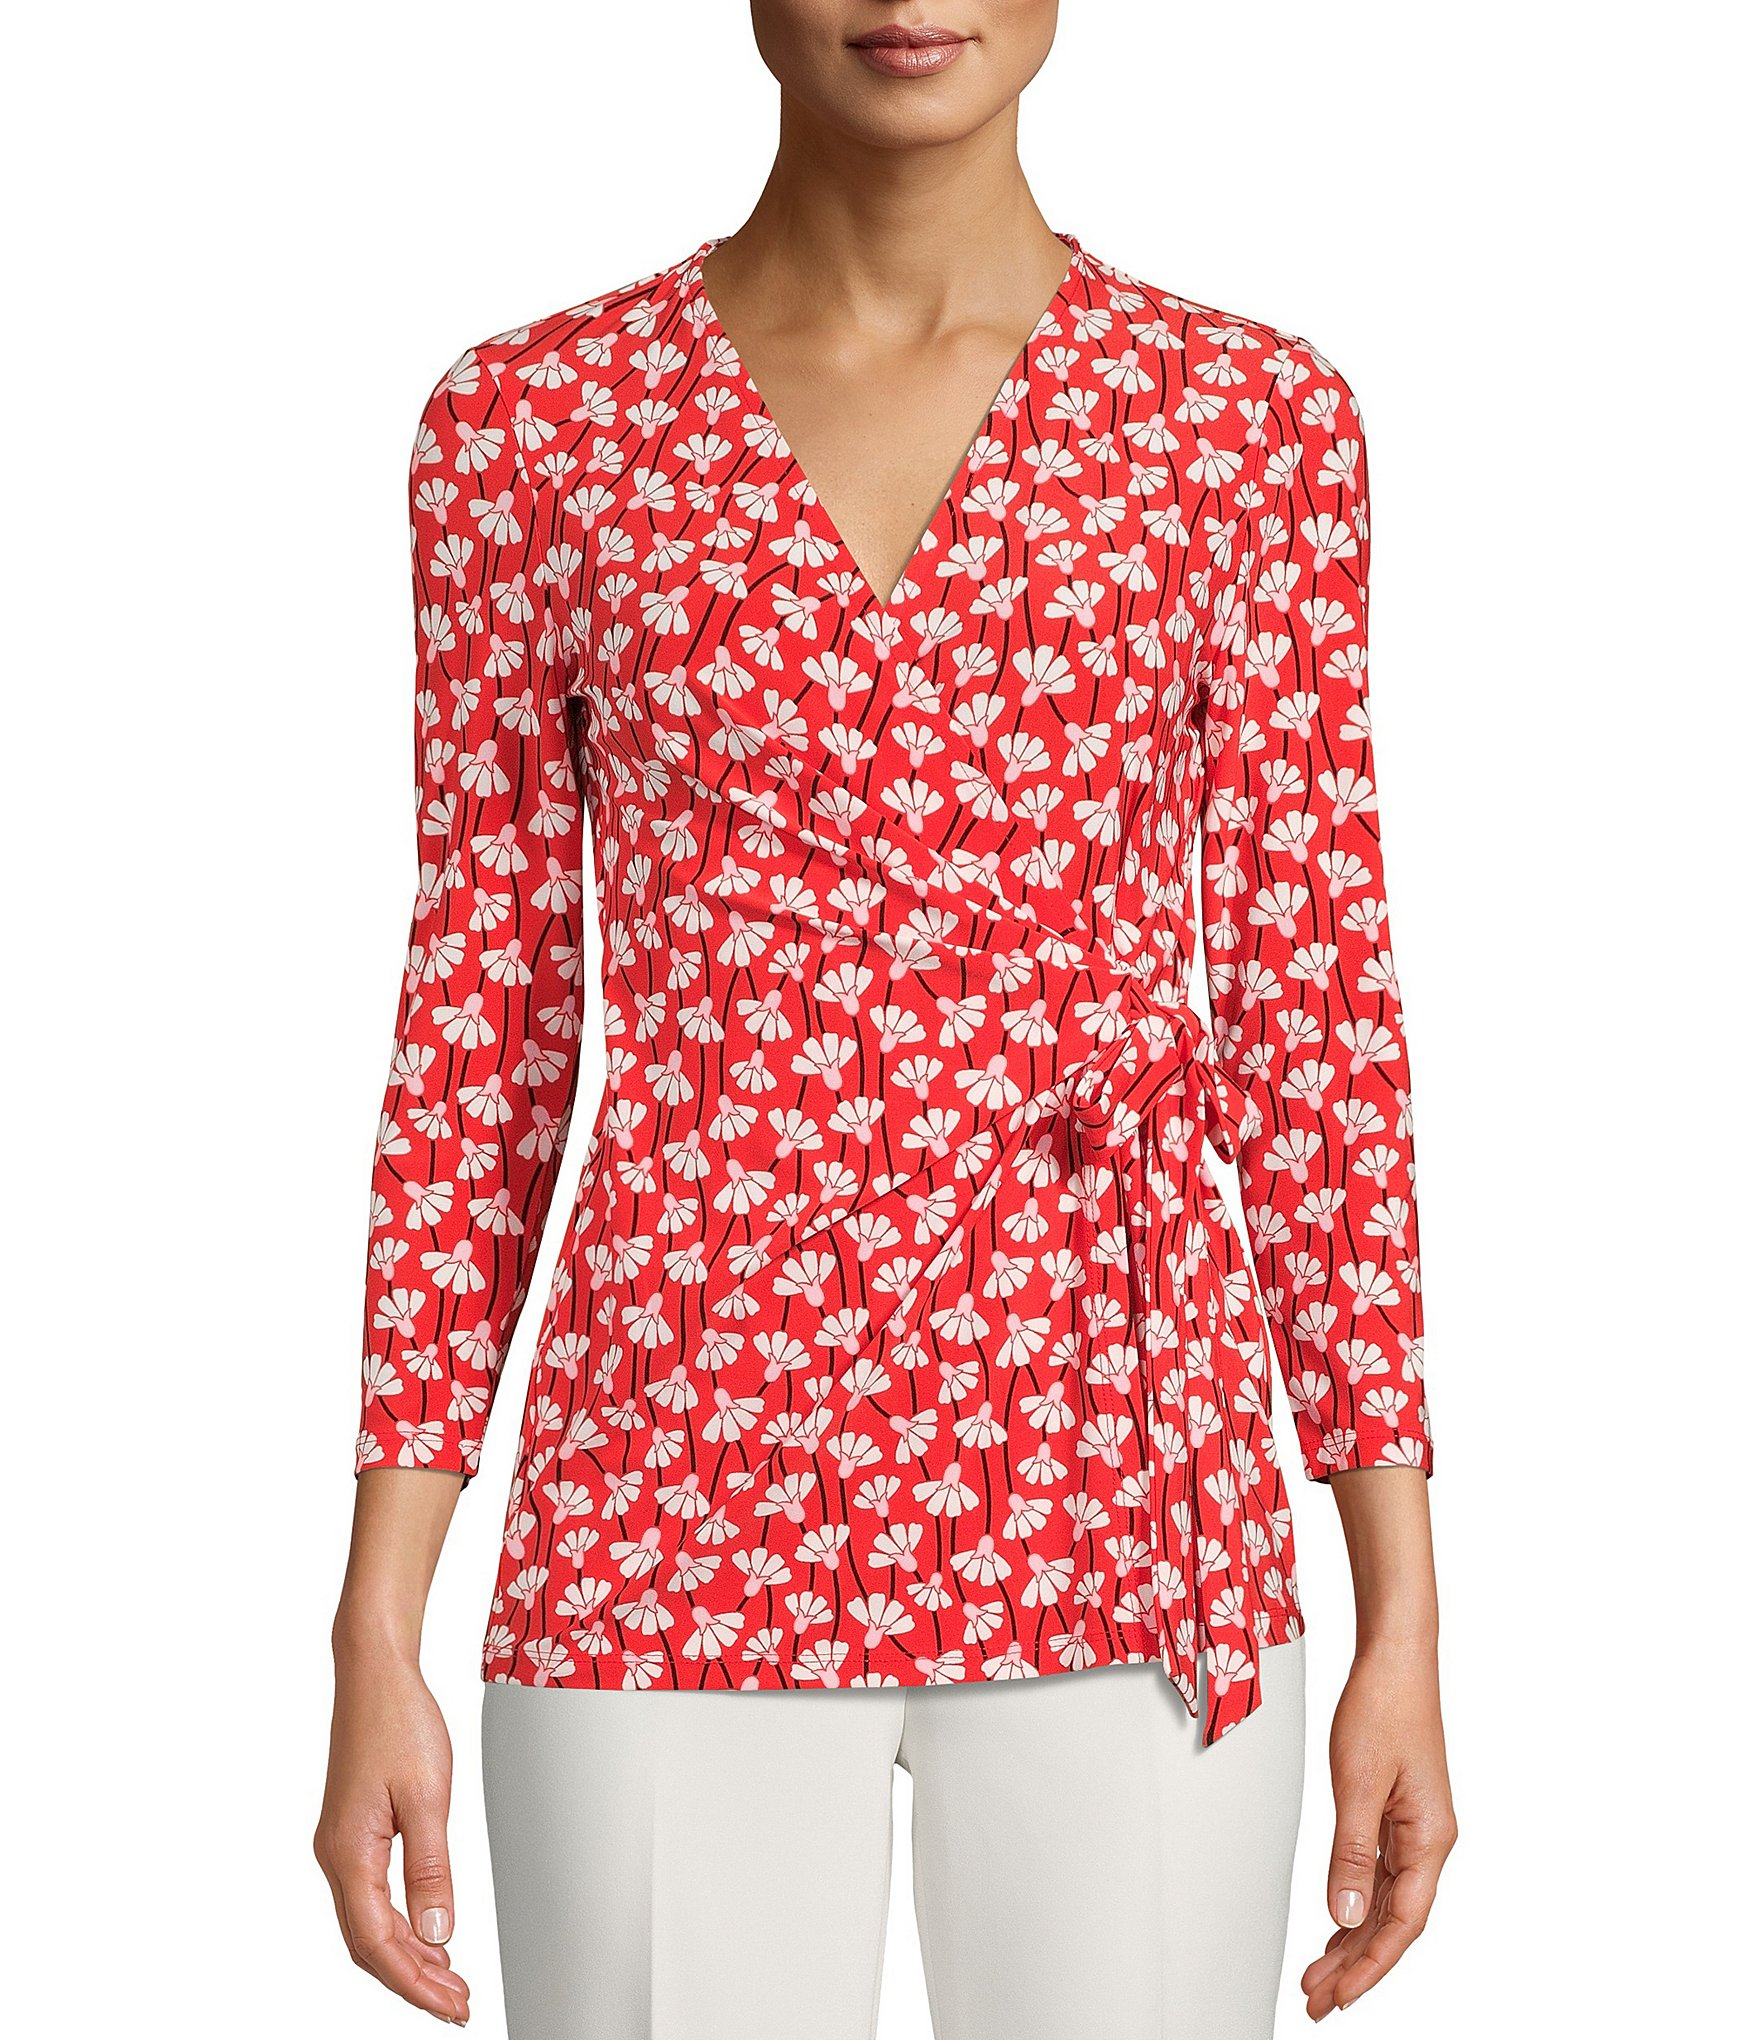 I.N.C Petite Ruffled Wrap Top MSRP $64.50 Size PM # 6C 497 NEW